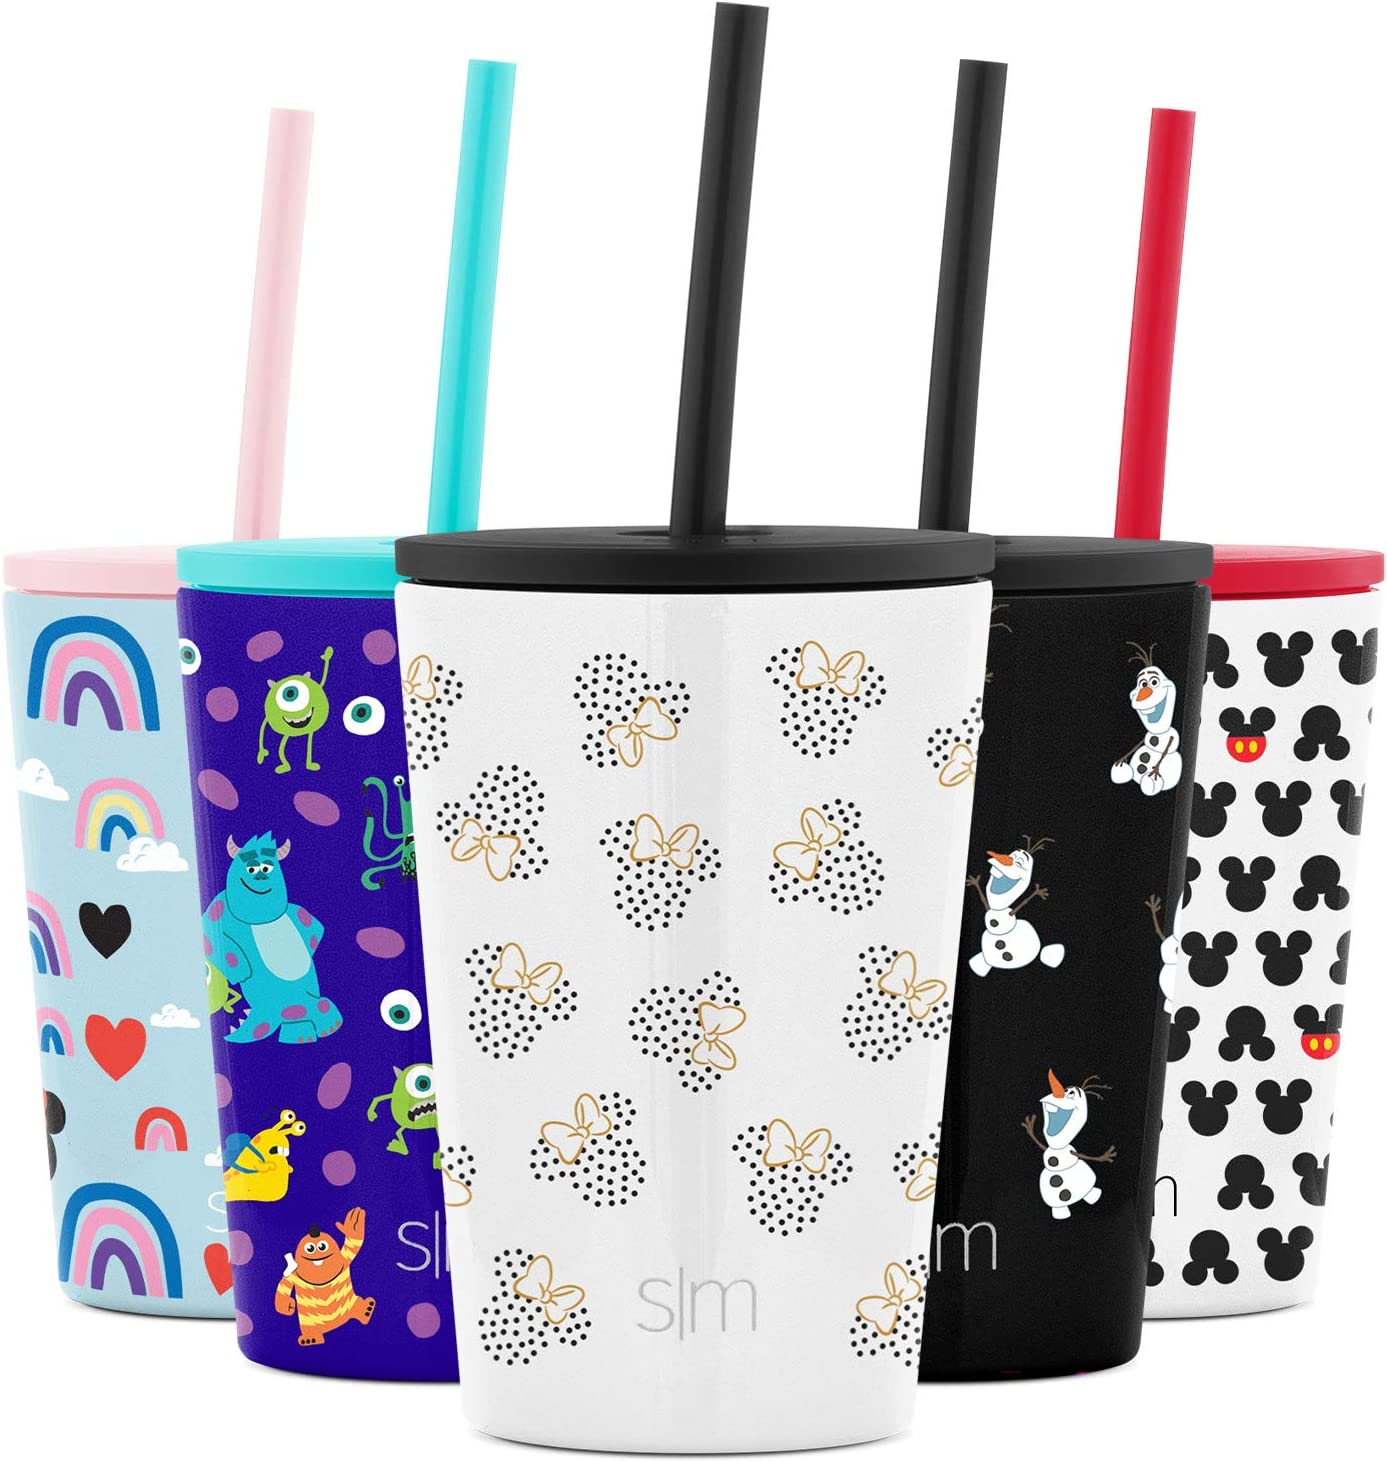 Simple Modern Disney Water Bottle for Kids Reusable Cup with Straw Sippy Lid Insulated Stainless Steel Thermos Tumbler for Toddlers Girls Boys, 12oz, Minnie Mouse Dots